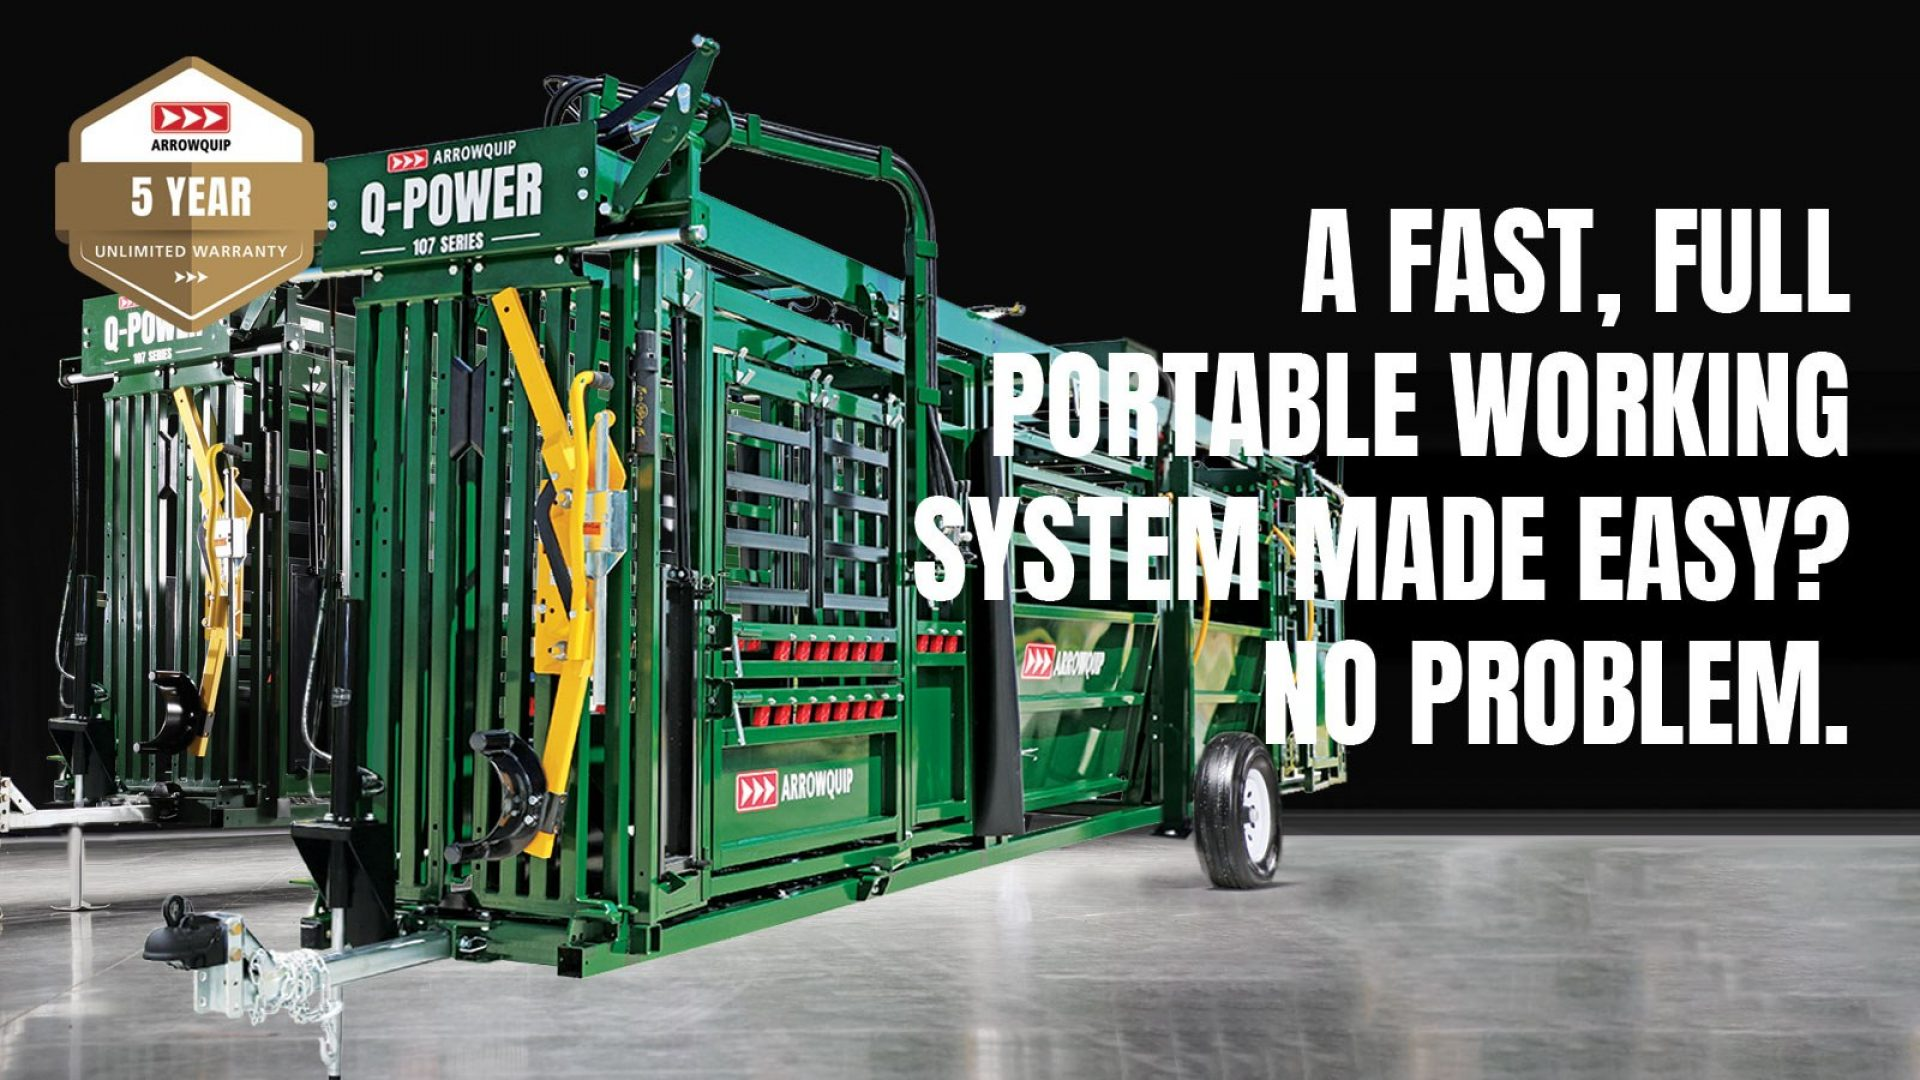 Q-Power 107 Series hydraulic portable cattle chute, alley and tub models